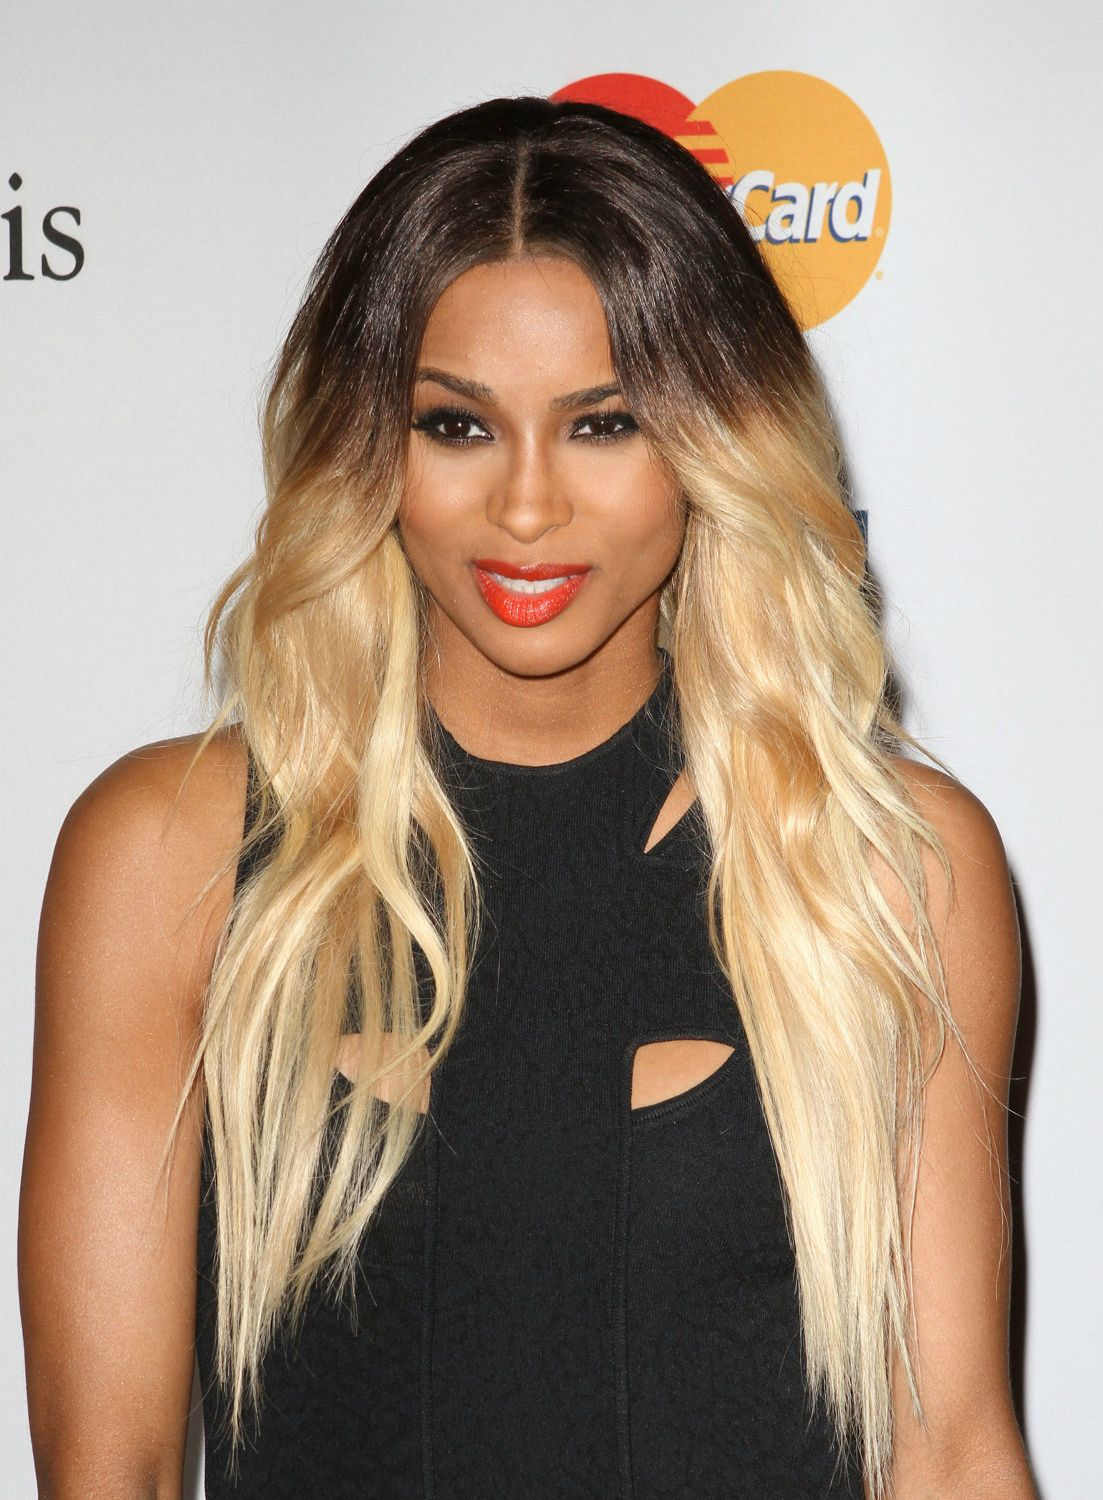 Hairstyles Ciara pictures